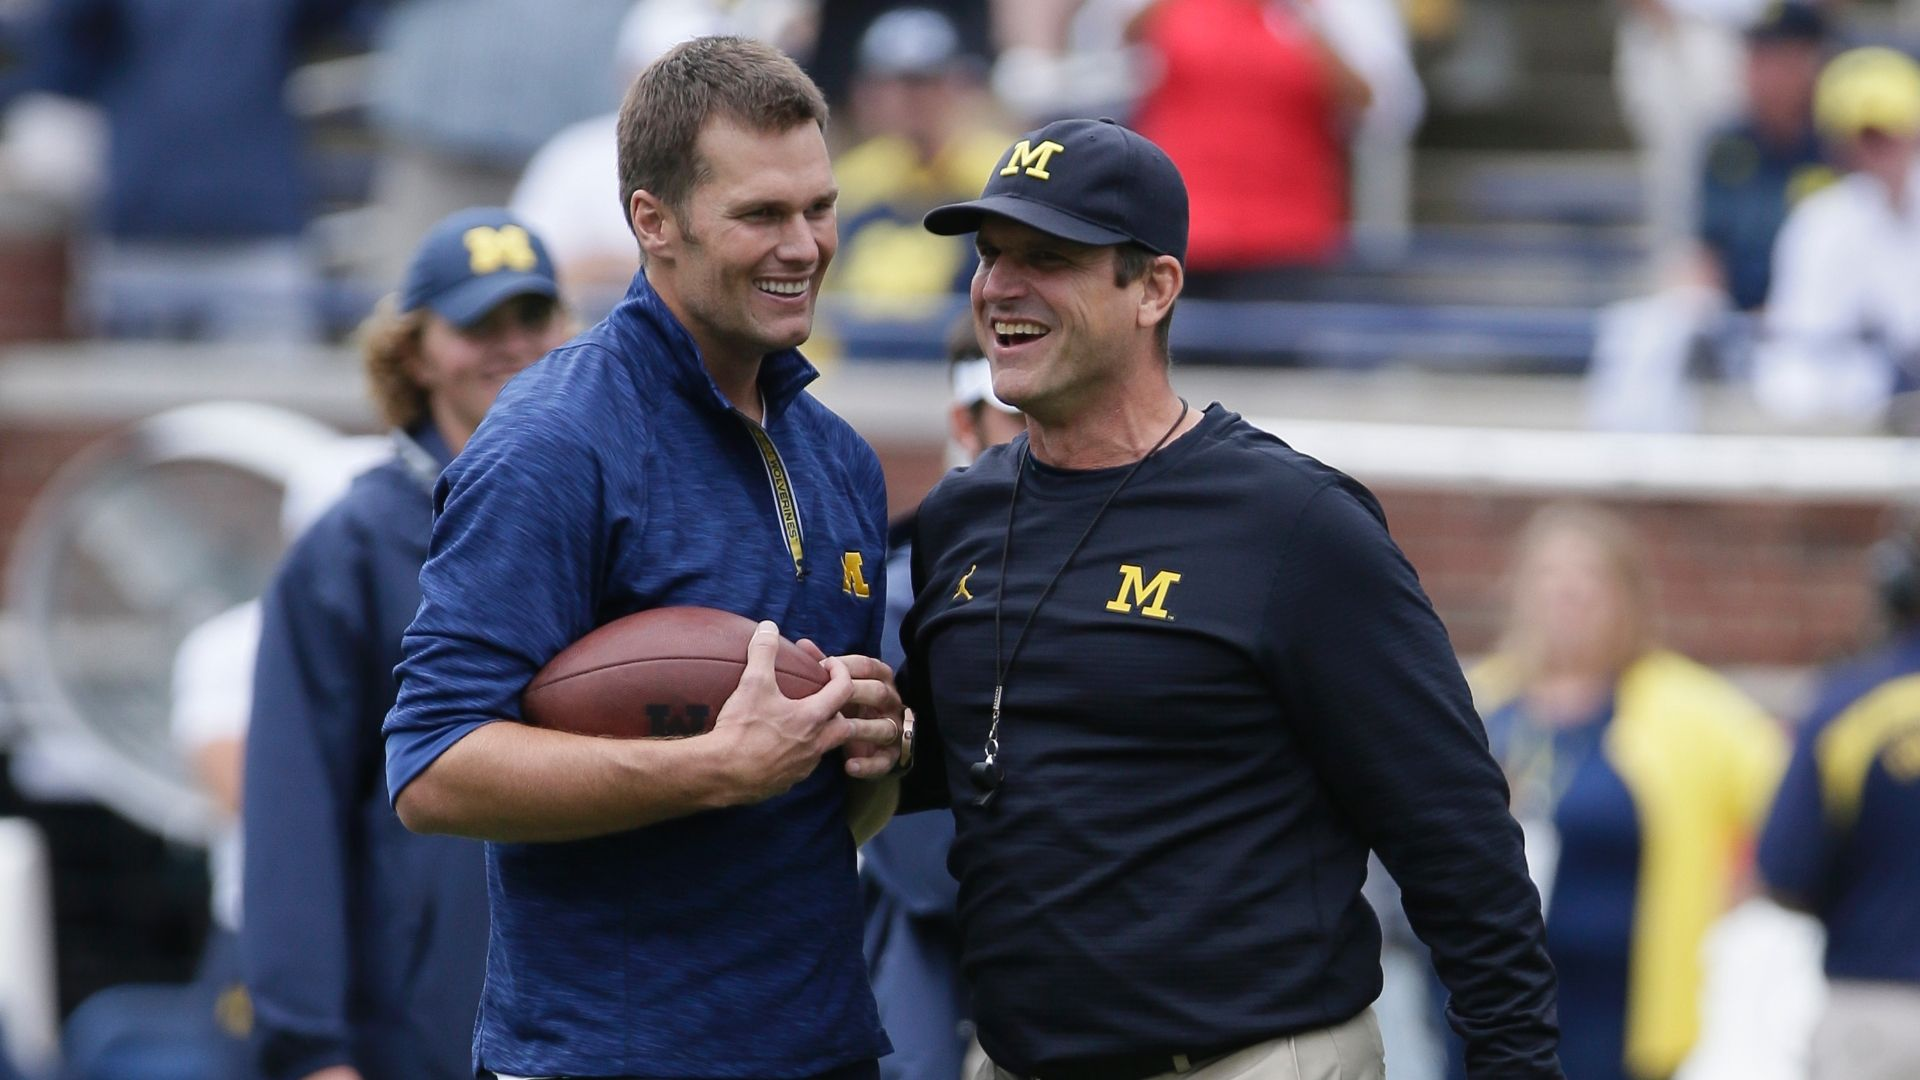 Jim Harbaugh calls Brady 'best of all time'